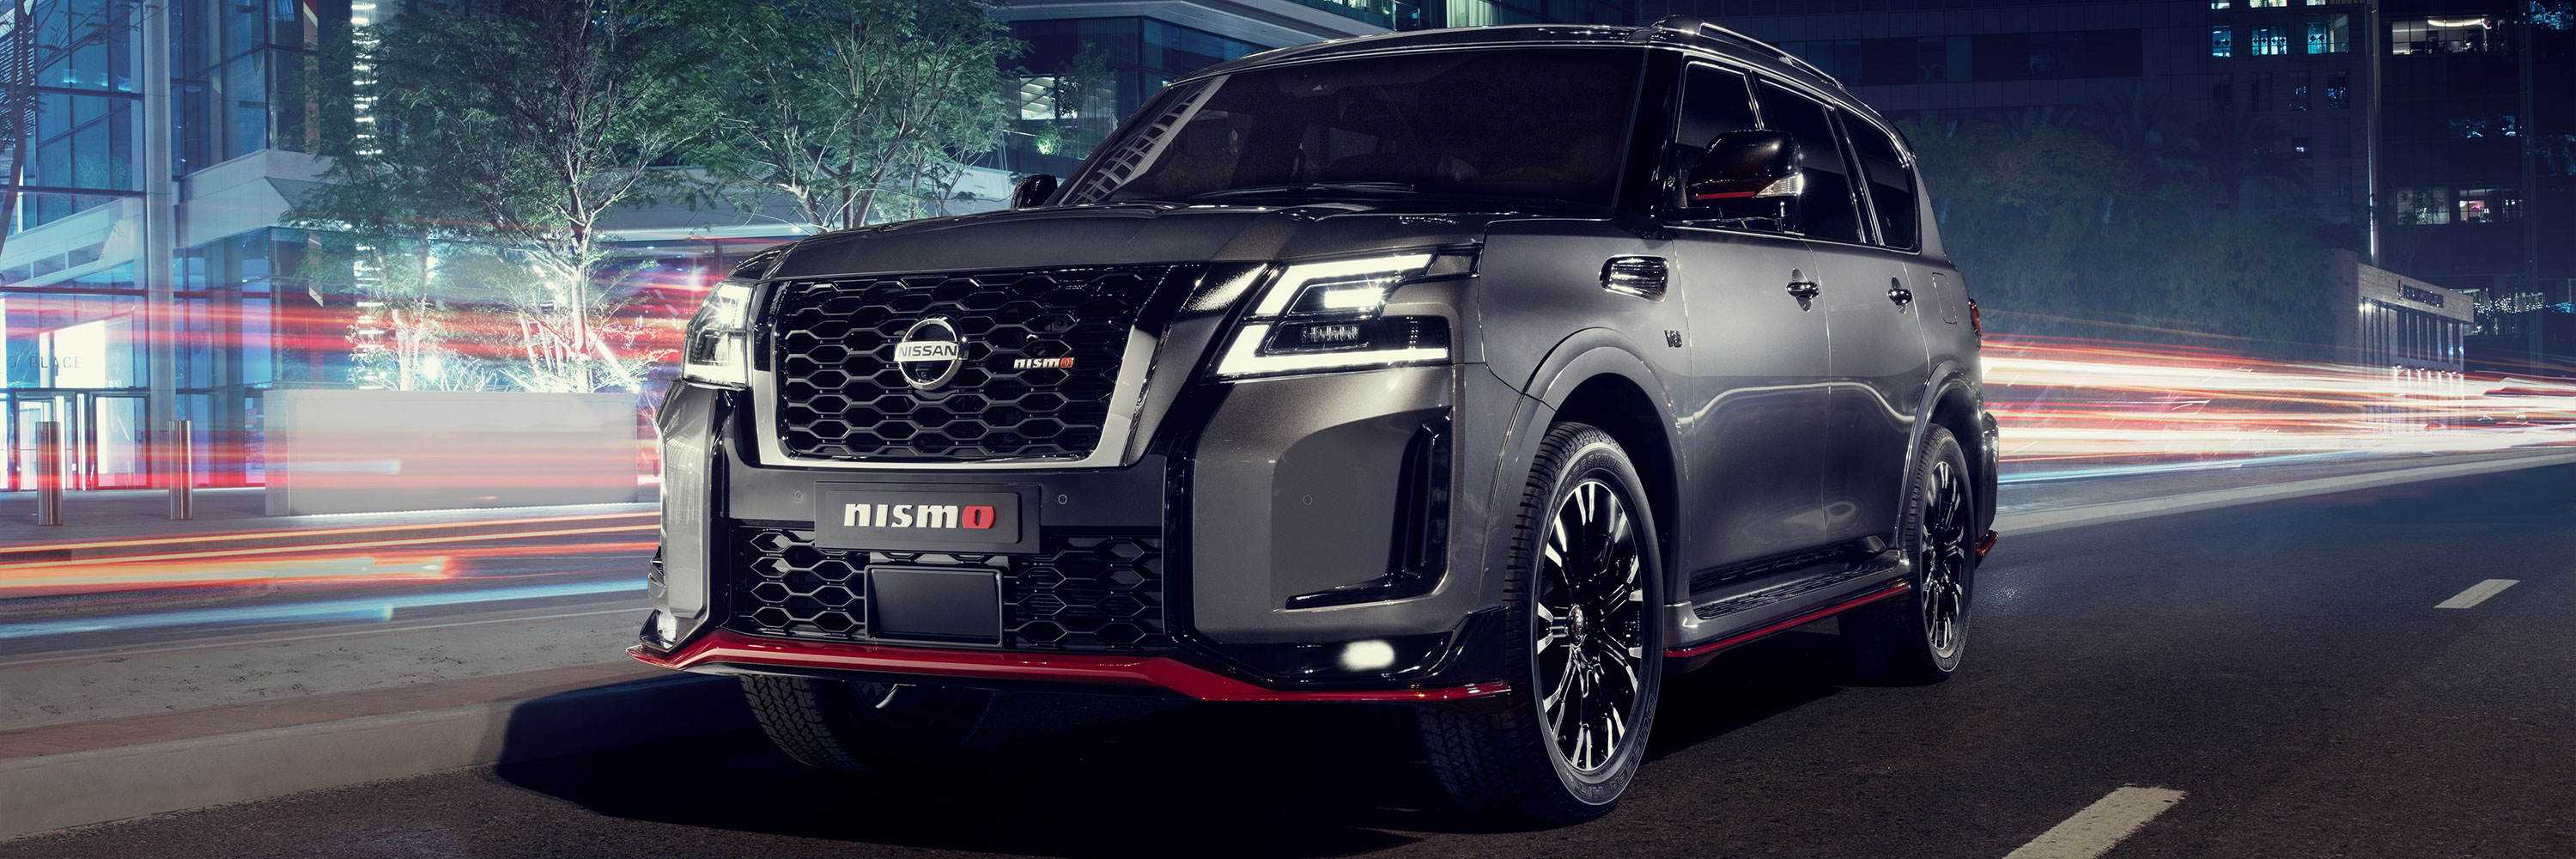 Nissan PATROL NISMO on a city road at night